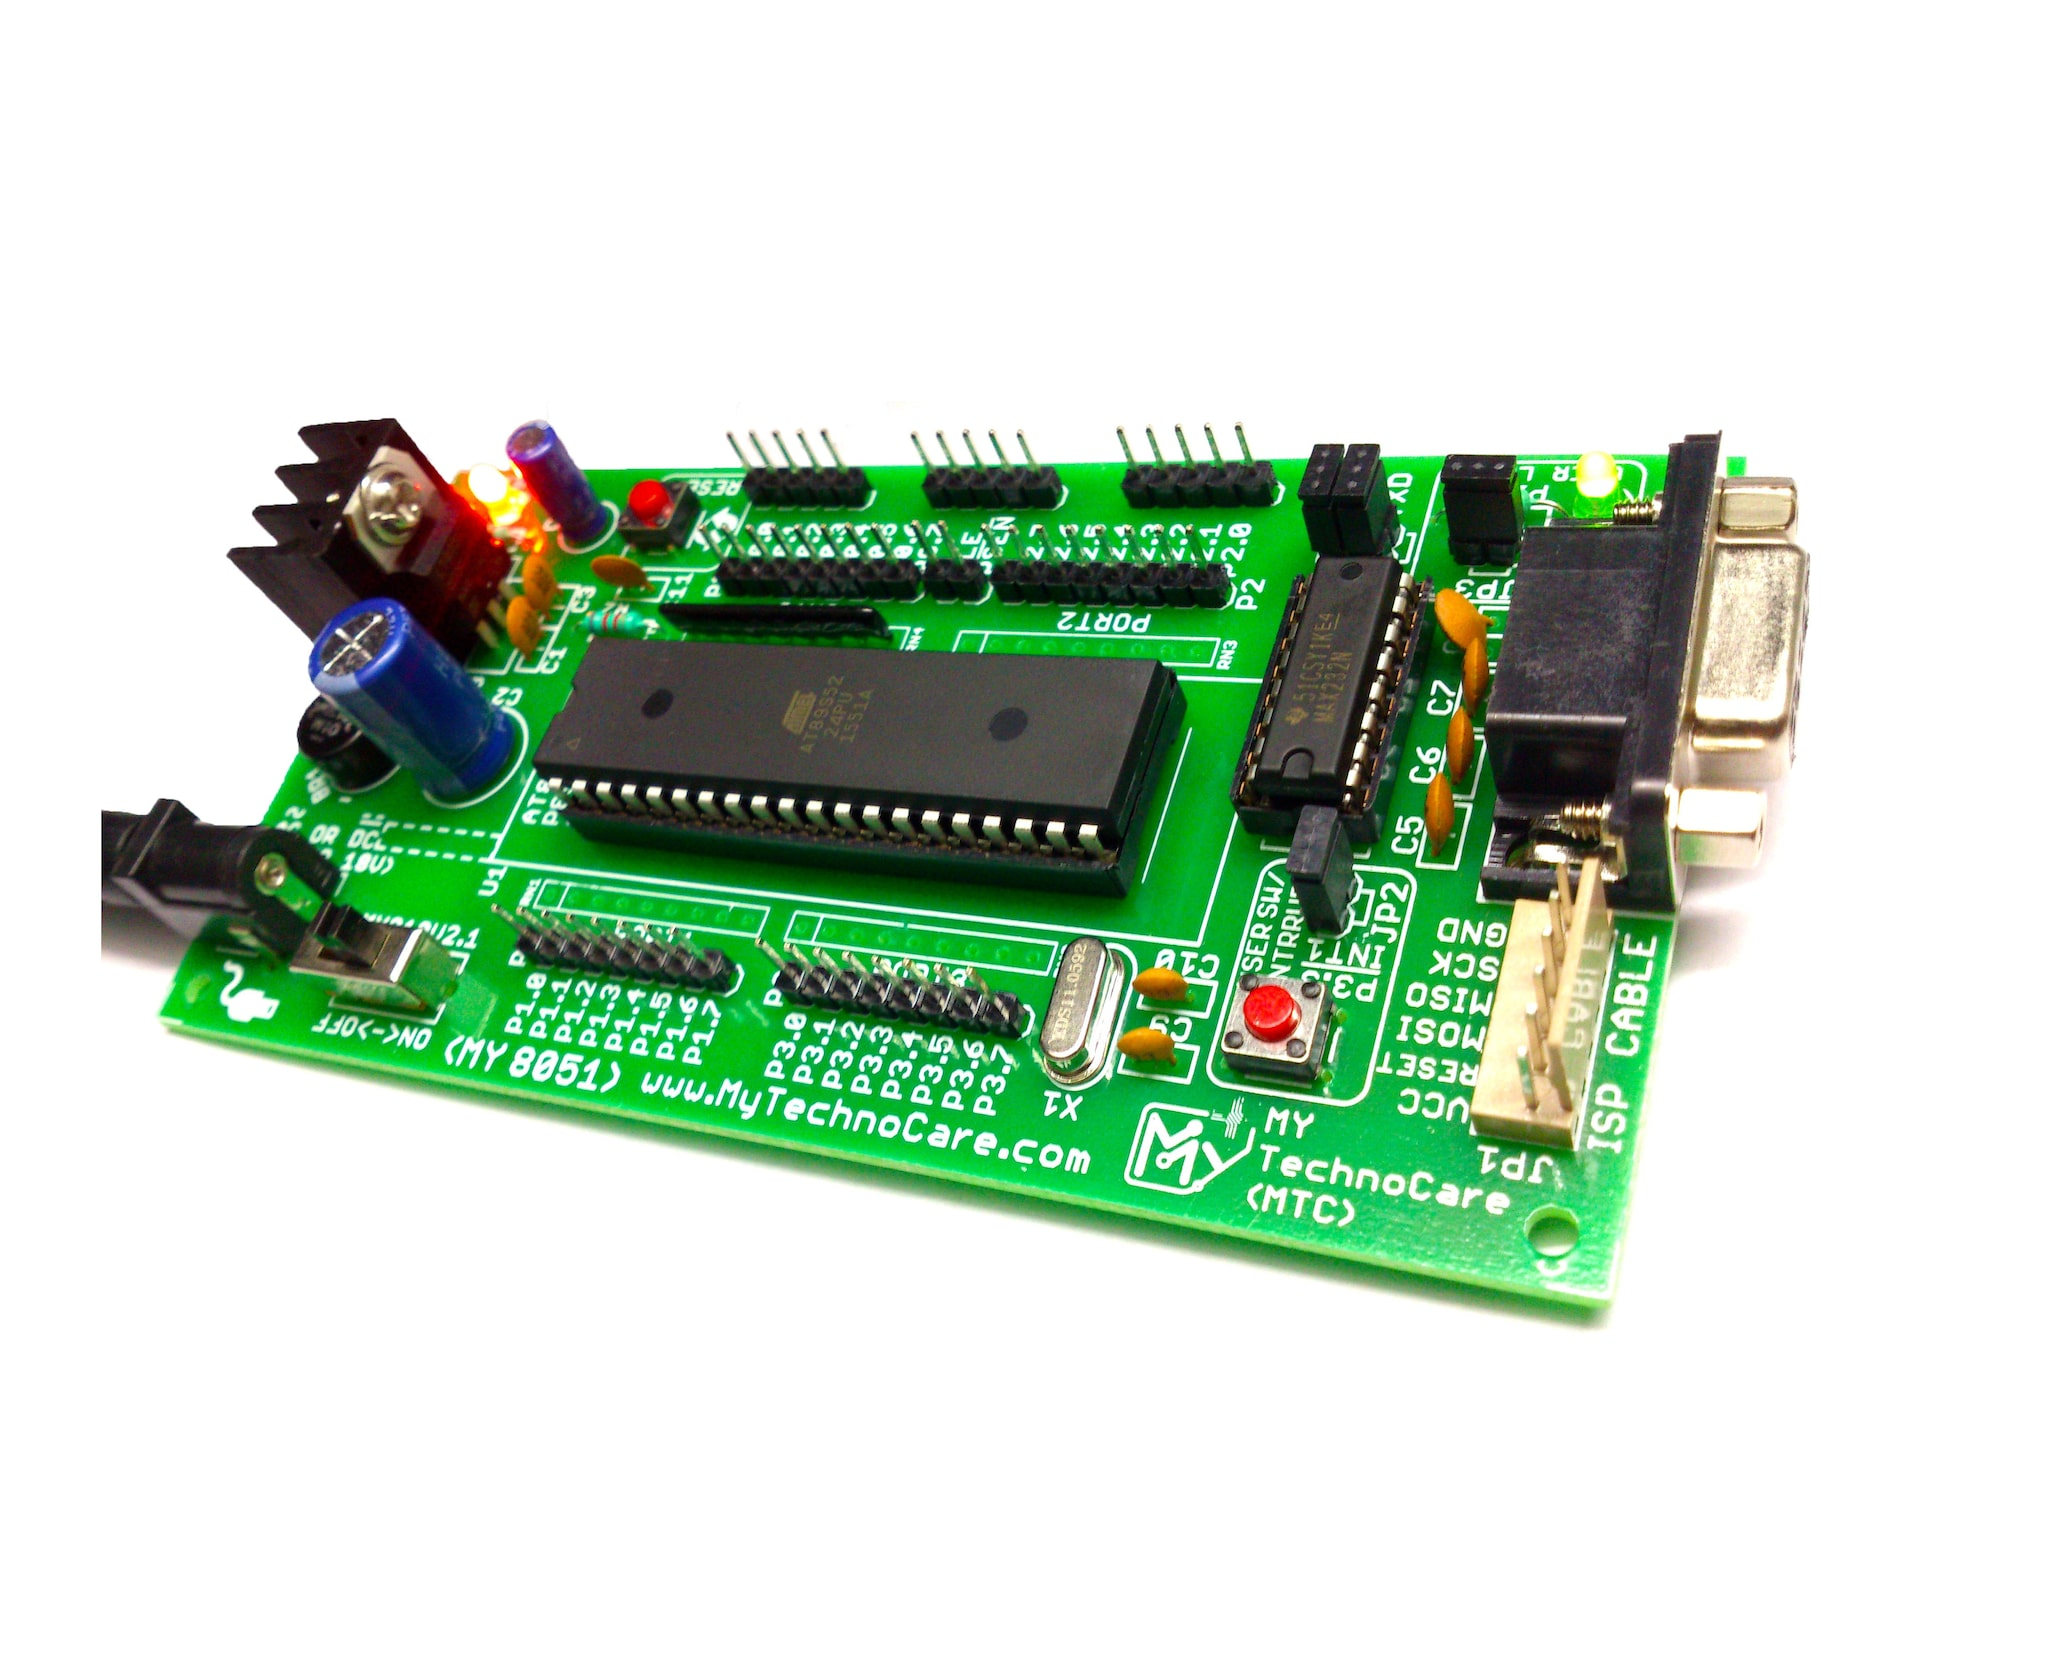 Buy 8051 Microcontroller Kit Diy Project Development Board With Circuit Diagram Of Atmel At89s52 Max232 Ic Rs232 My Technocare Free Shipping Online At Low Prices In